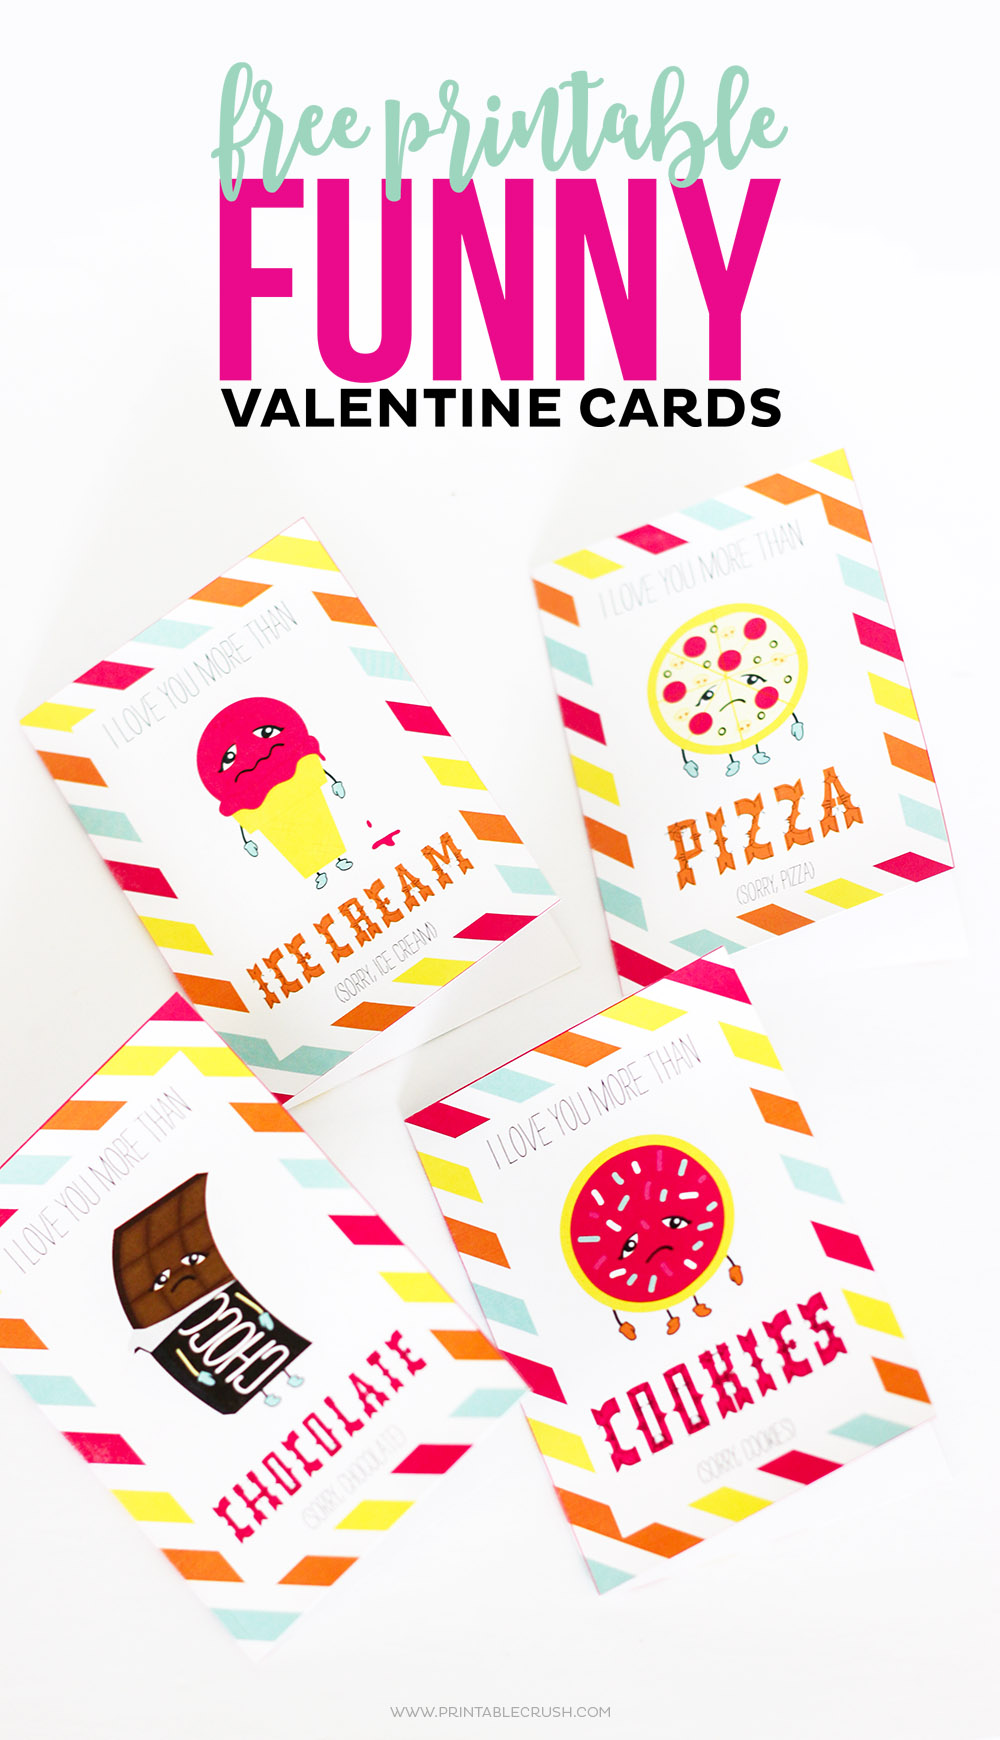 photograph about Funny Printable Valentines Cards known as Cost-free Printable Humorous Valentine Playing cards - Printable Crush